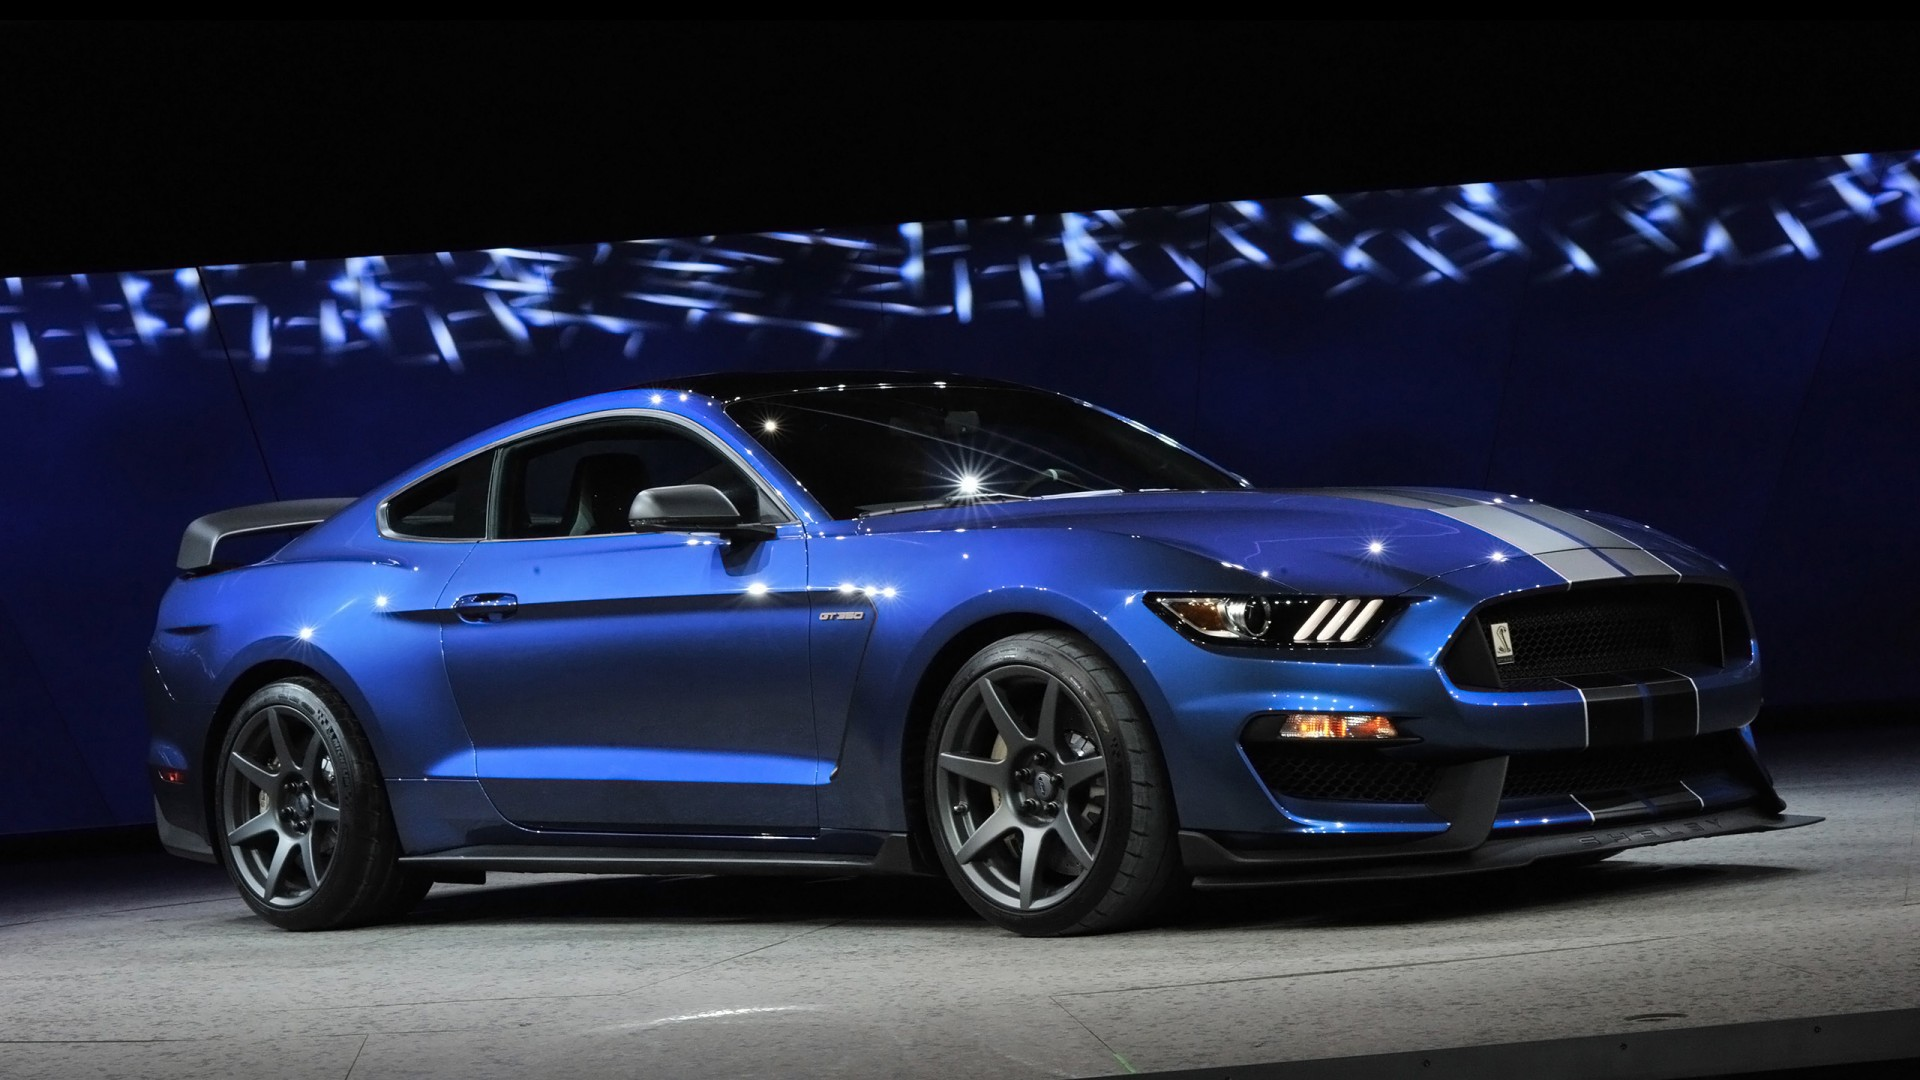 2016 Ford Shelby Gt350r Mustang 2 Wallpaper